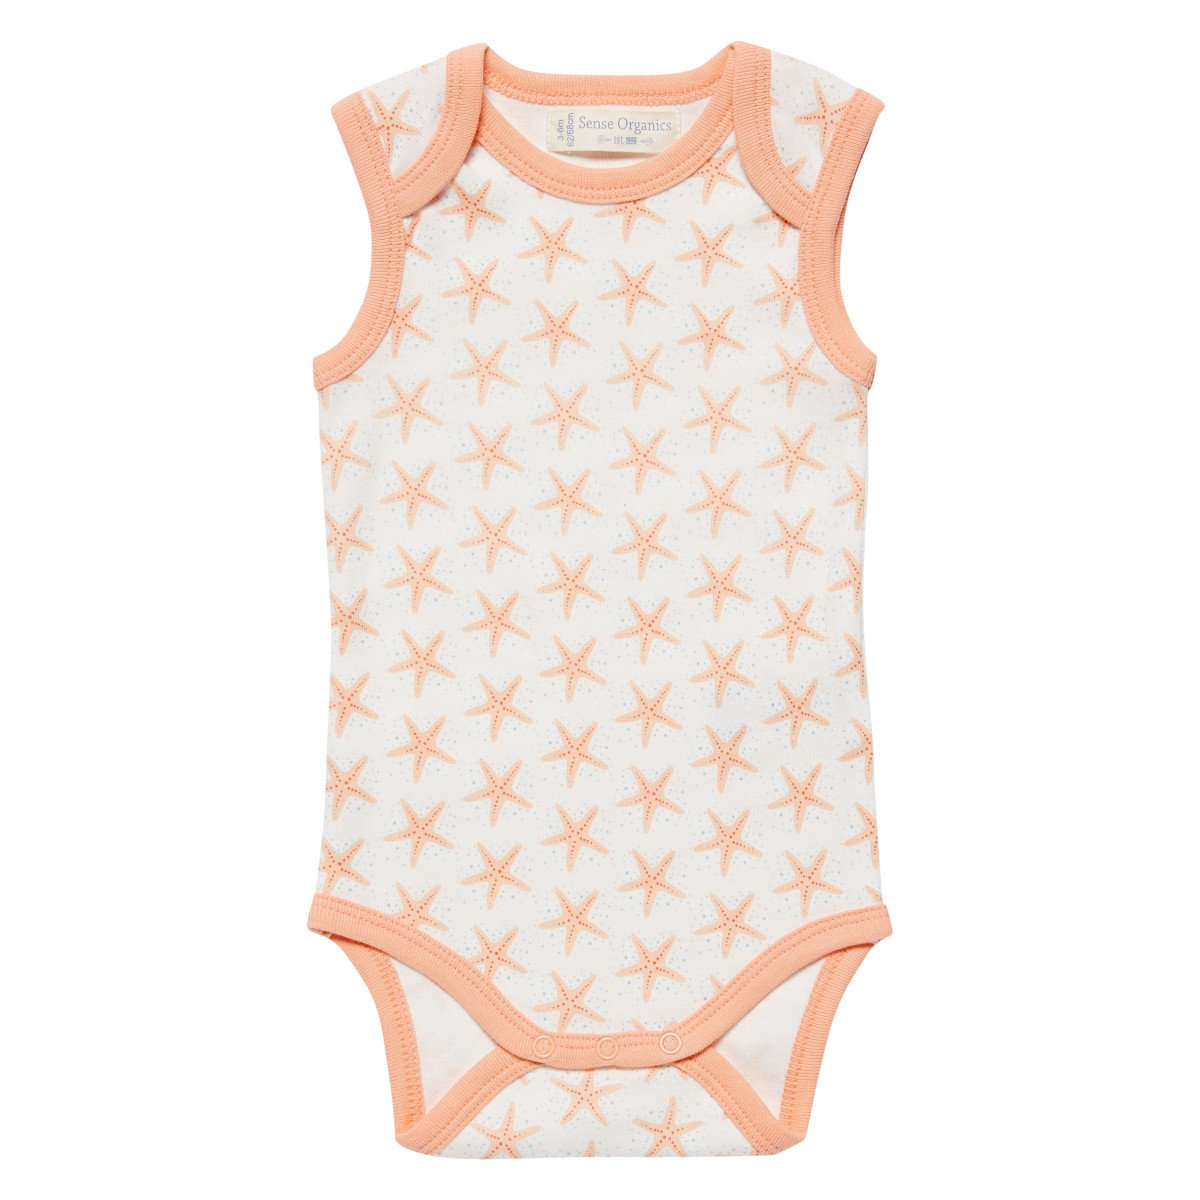 Baby Body Sleeveless with starfish in organic cotton